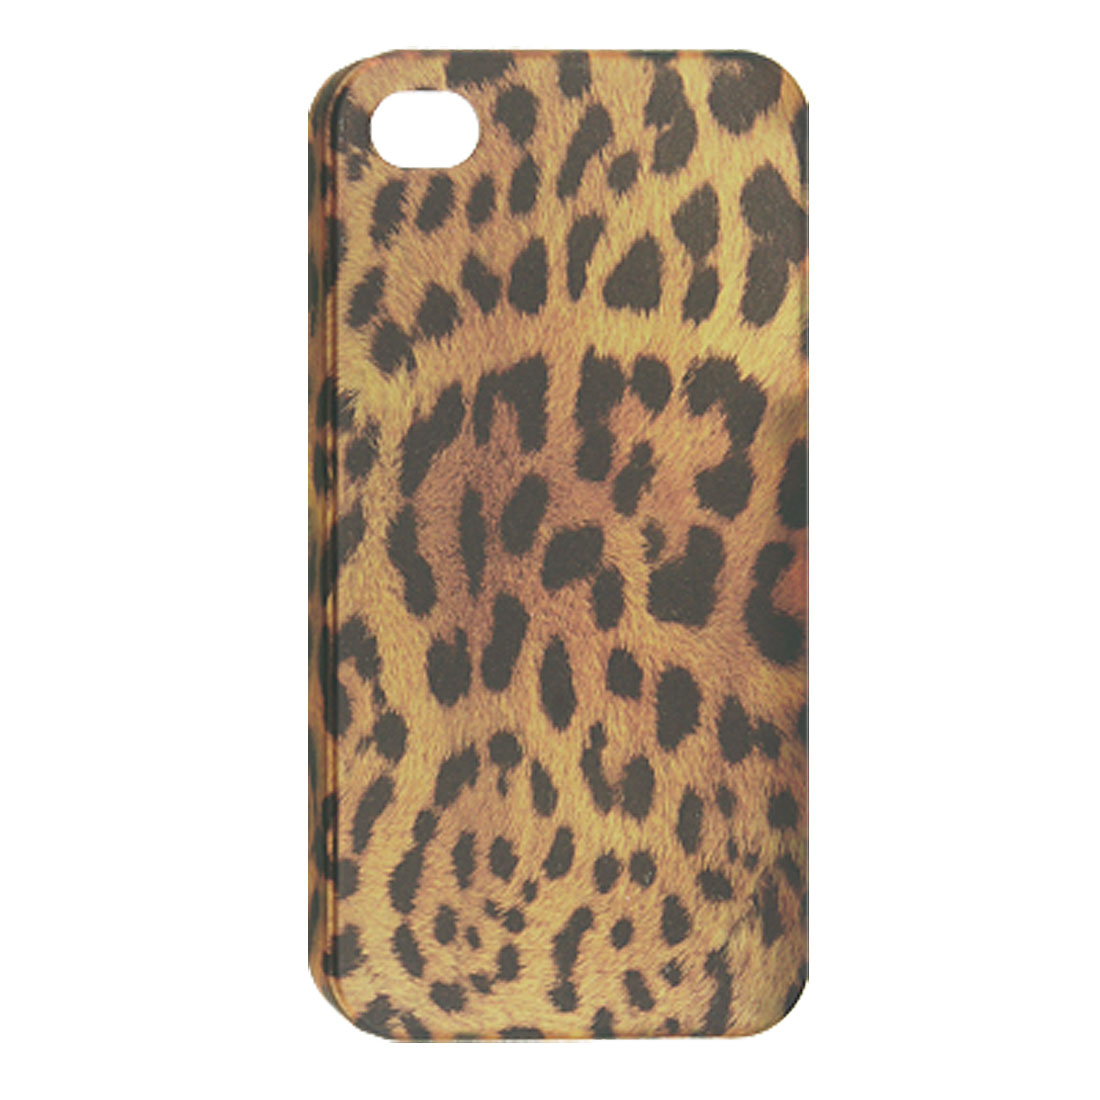 Emulational Leopard Pattern Plastic Back Case for iPhone 4 4G 4S